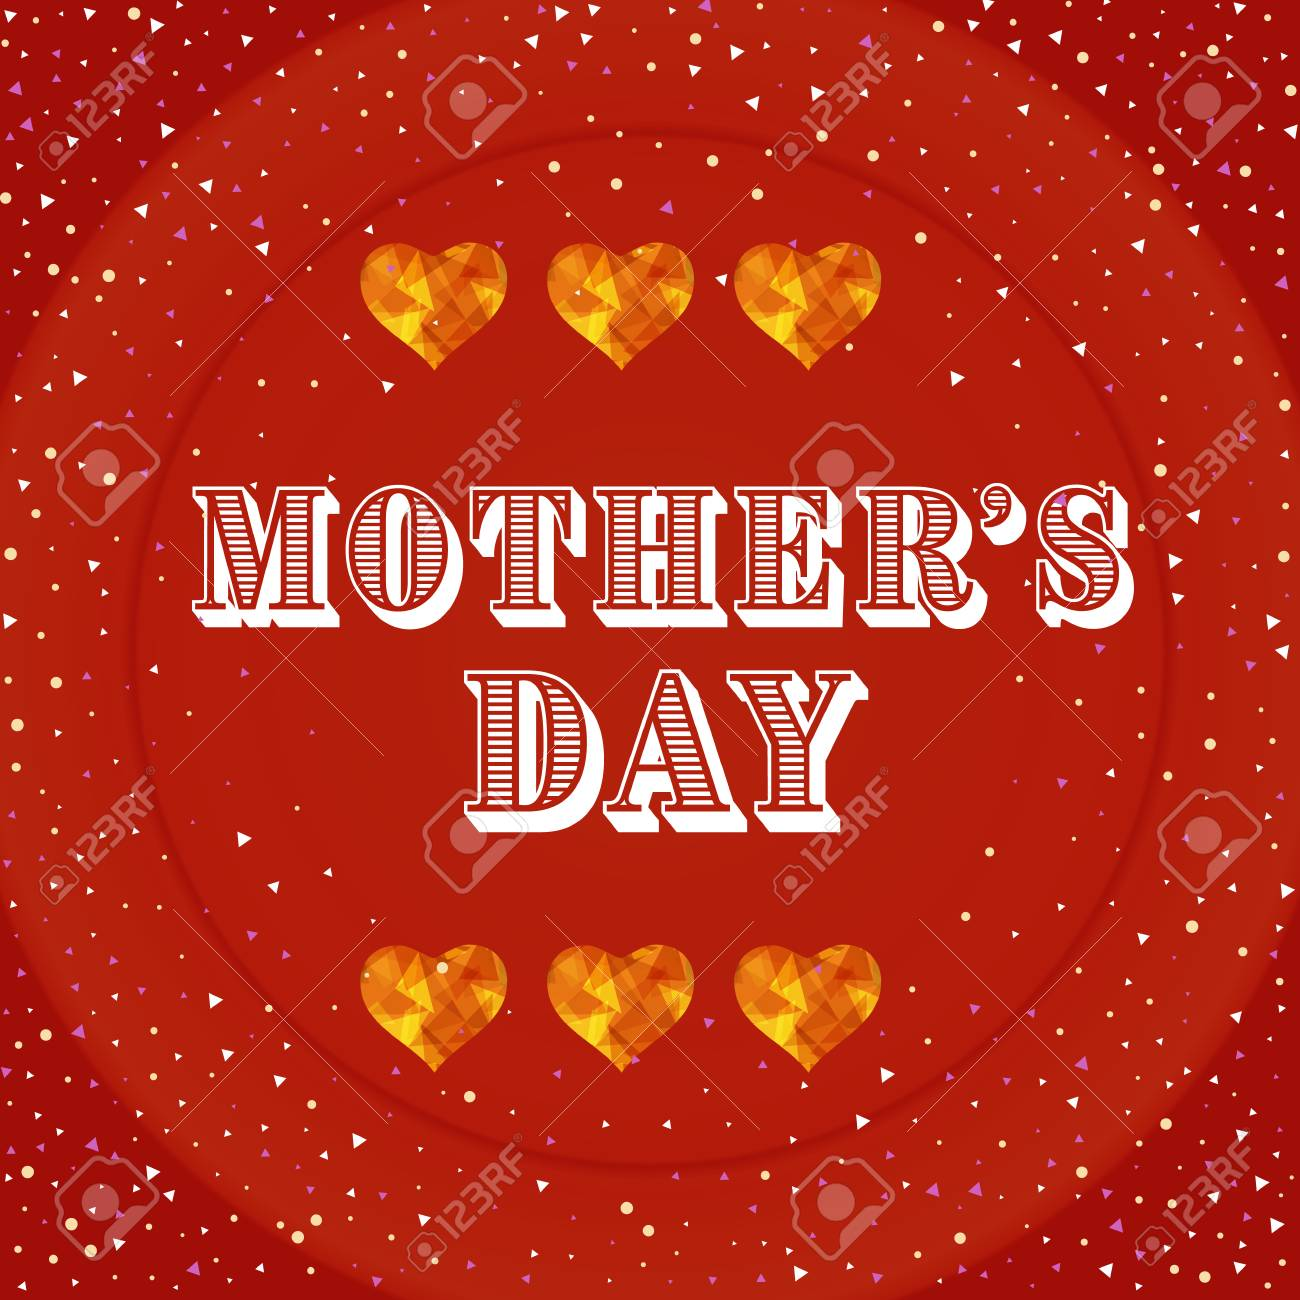 Happy Mothers Day Greeting Card Mothers Day Card With Heart